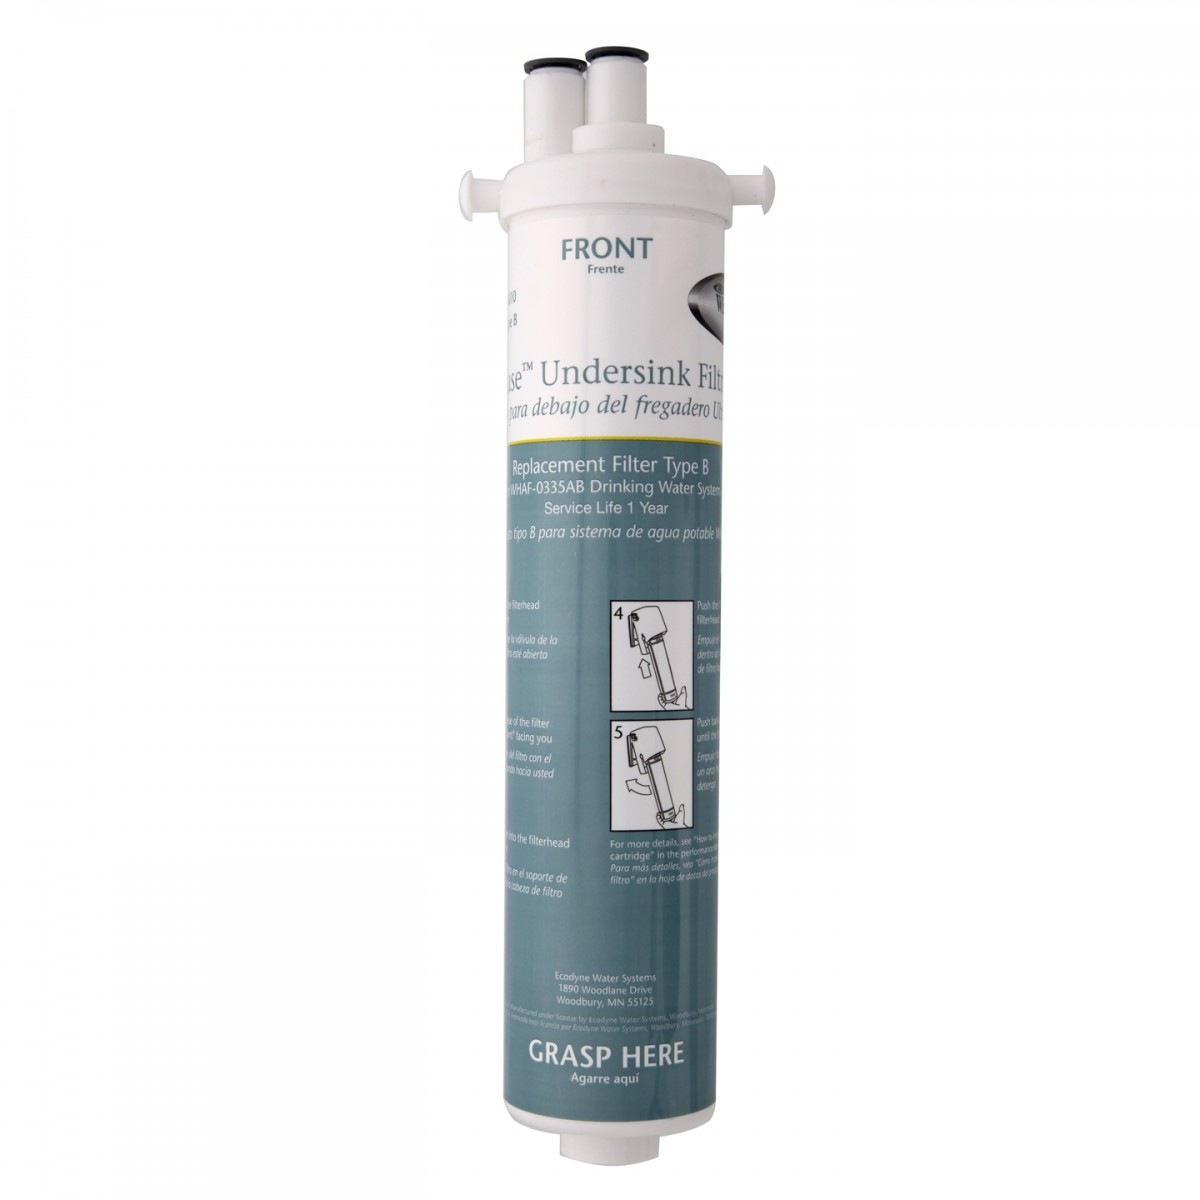 Whirlpool Water Filters Wiring Diagram 4317943 Whab 6010 Replacement Unit B Filter Cartridge